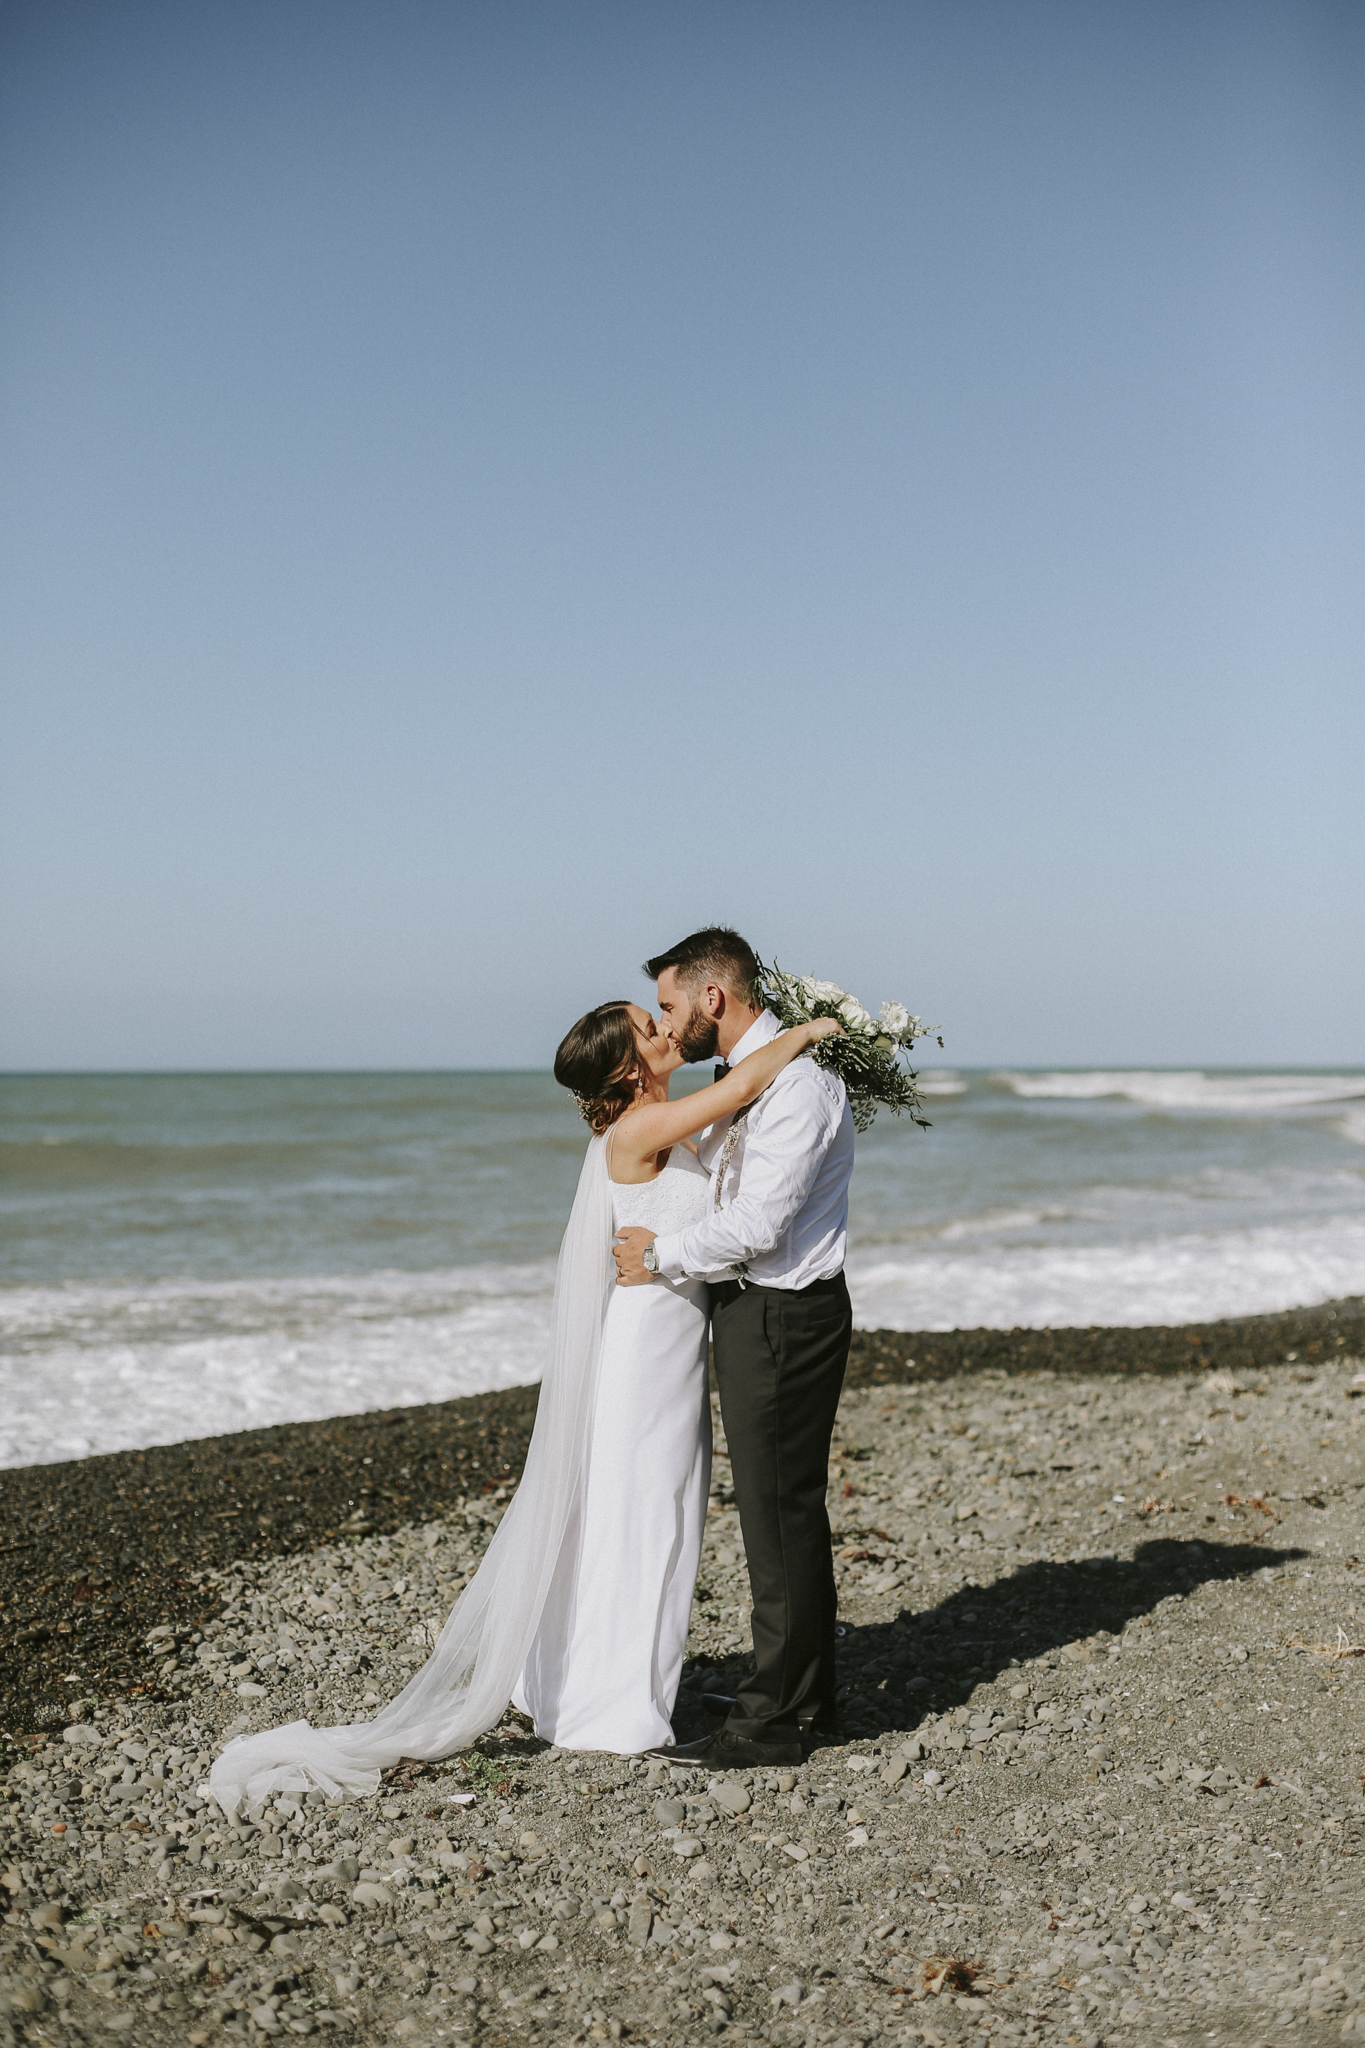 Married next to the ocean